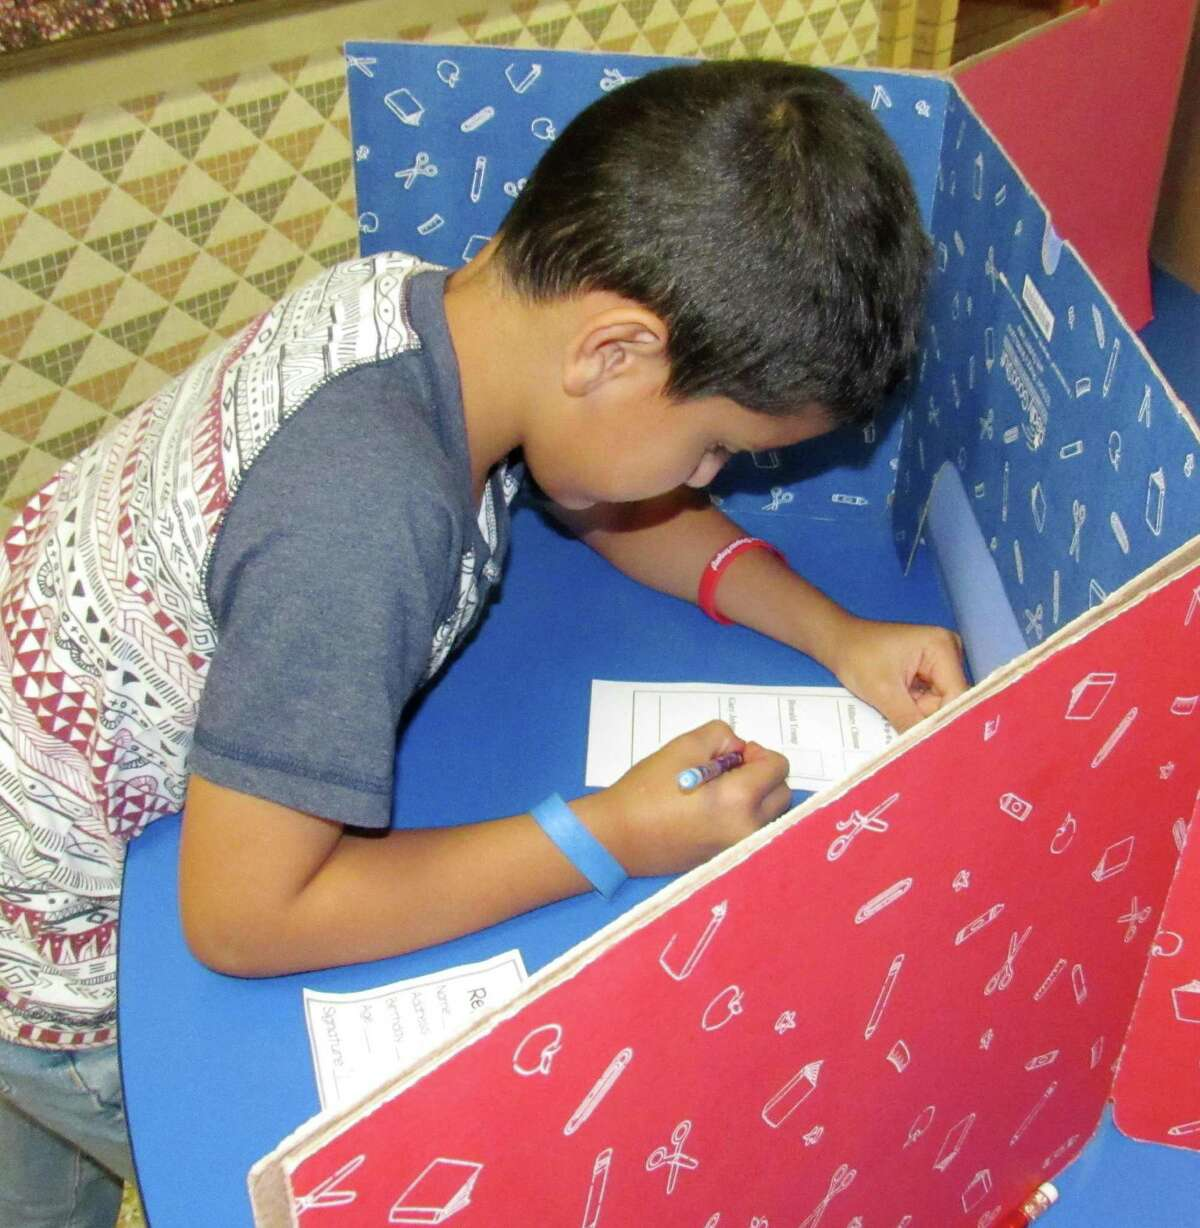 Nathan Cortez, a second-grade student at Needville Elementary, marks his ballot in a mock election Tuesday morning. Pupils presented their voter identification cards, complete with self-portraits of pencil and crayon, to polling workers (fellow students) before voting.